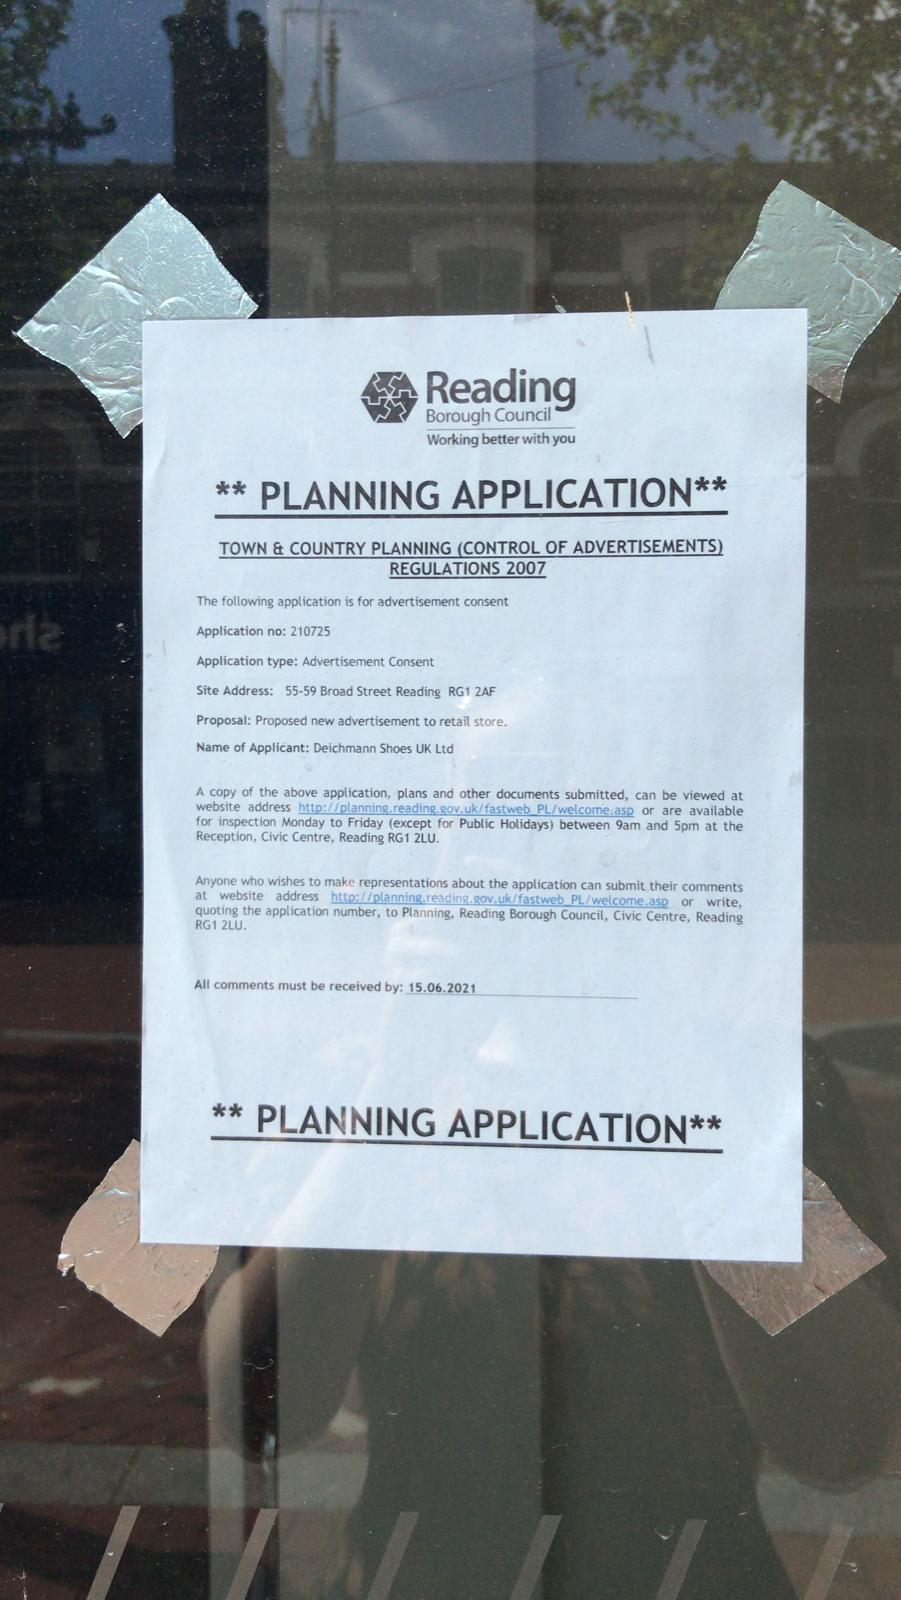 The planning application sign